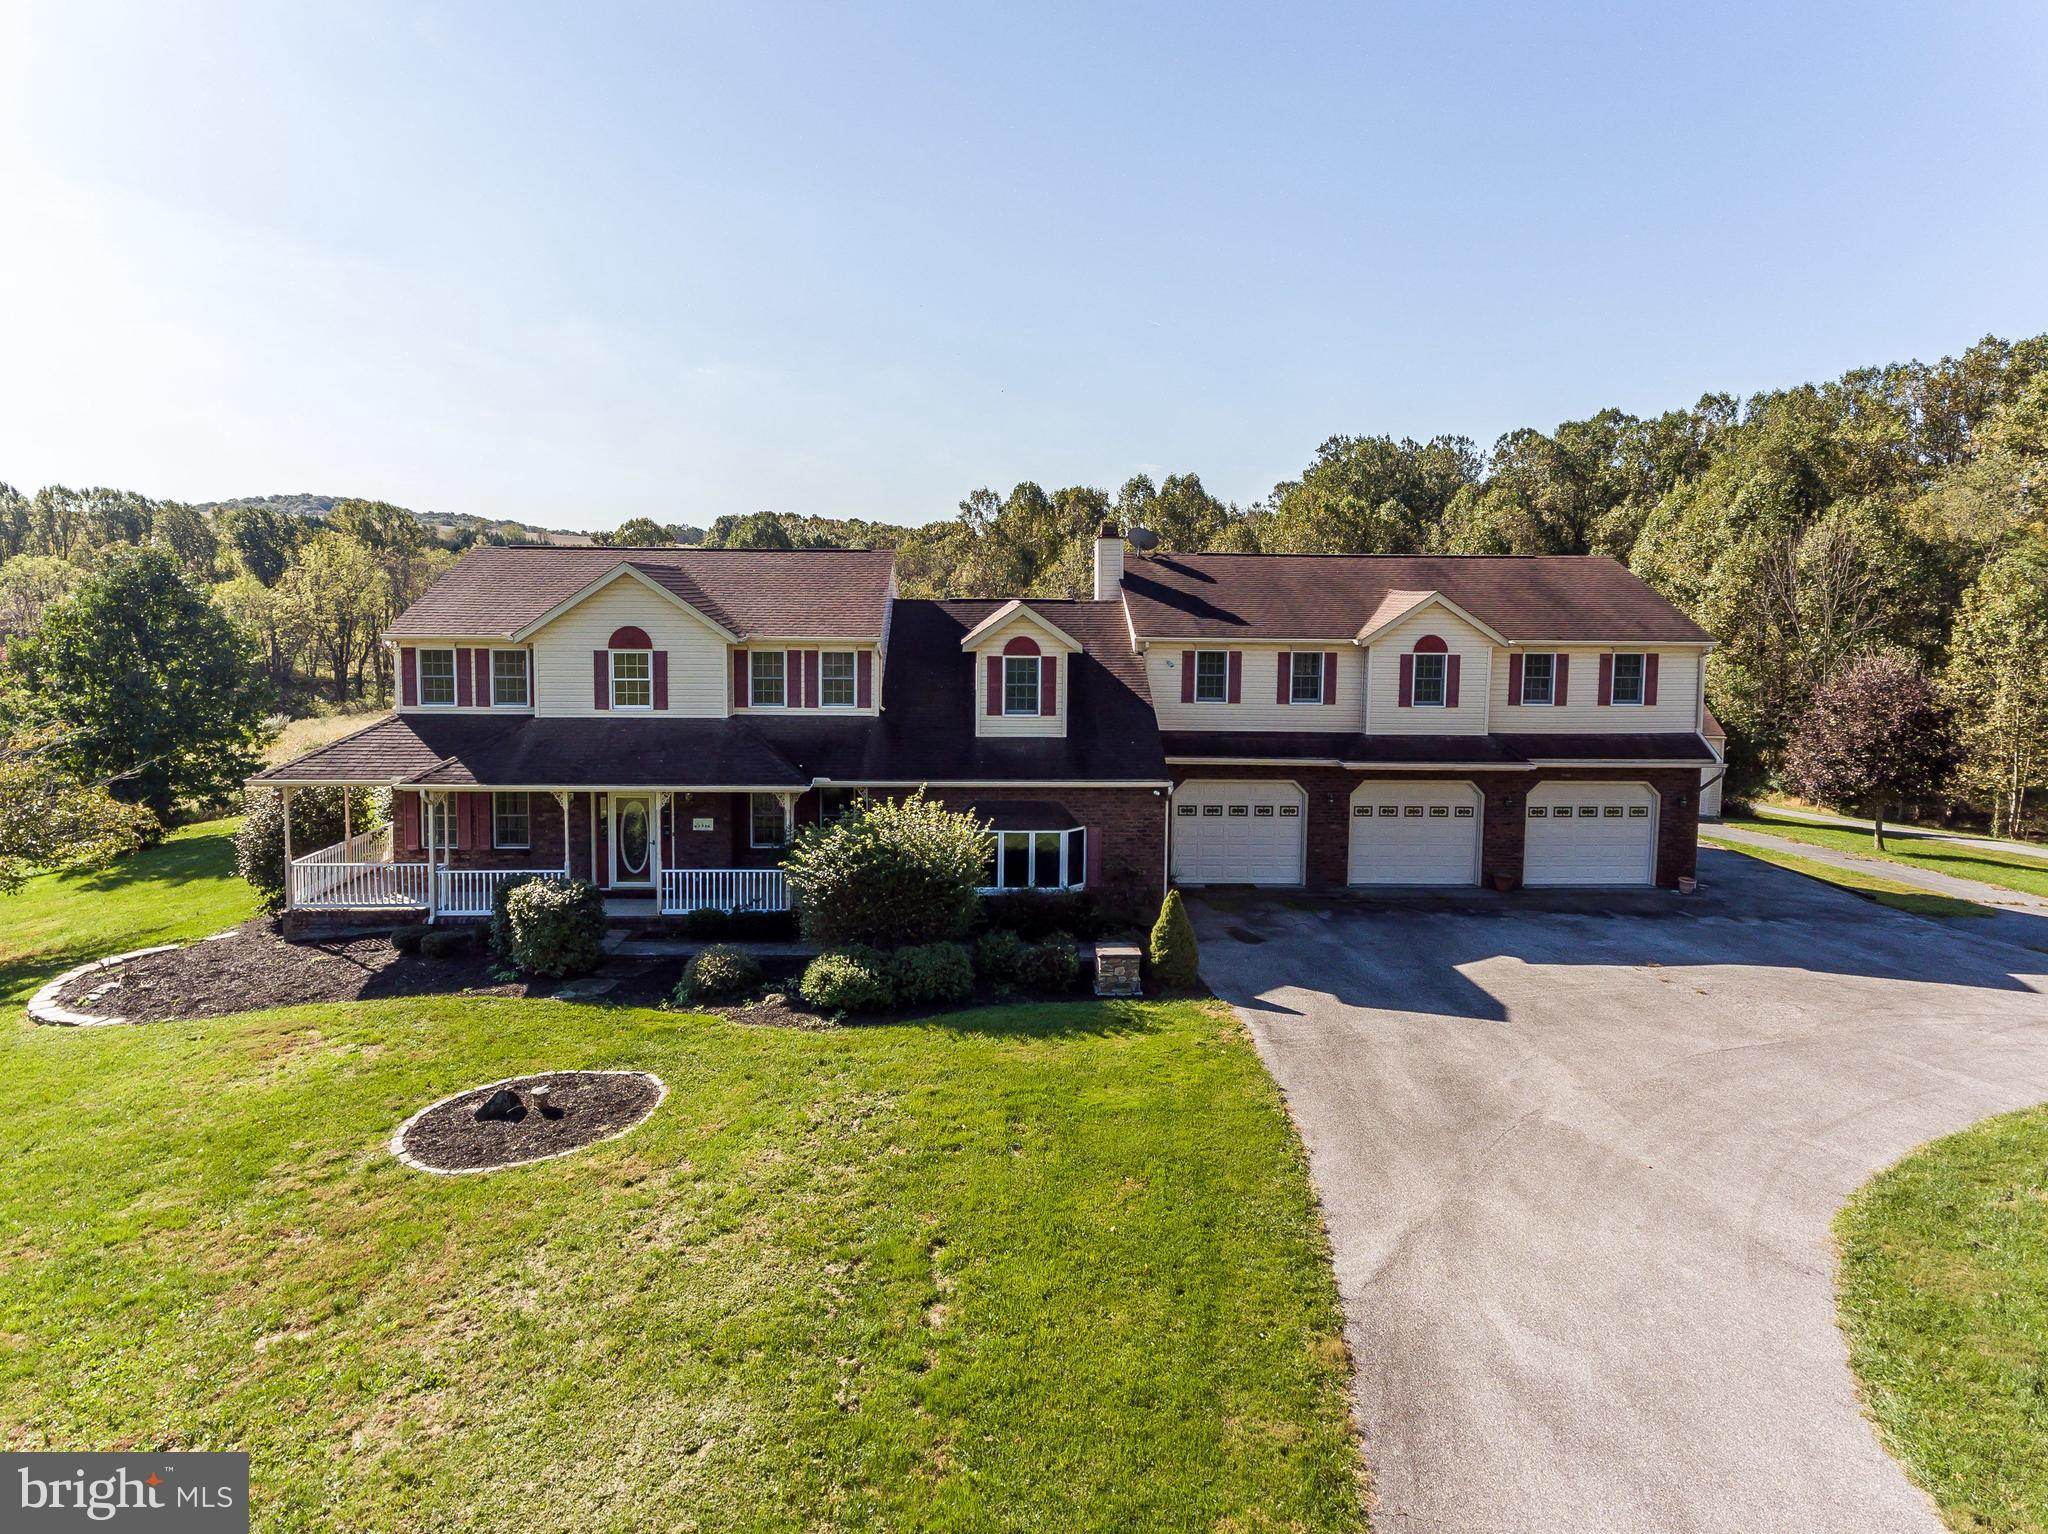 665 LAKE DRIVE, WESTMINSTER, MD 21158